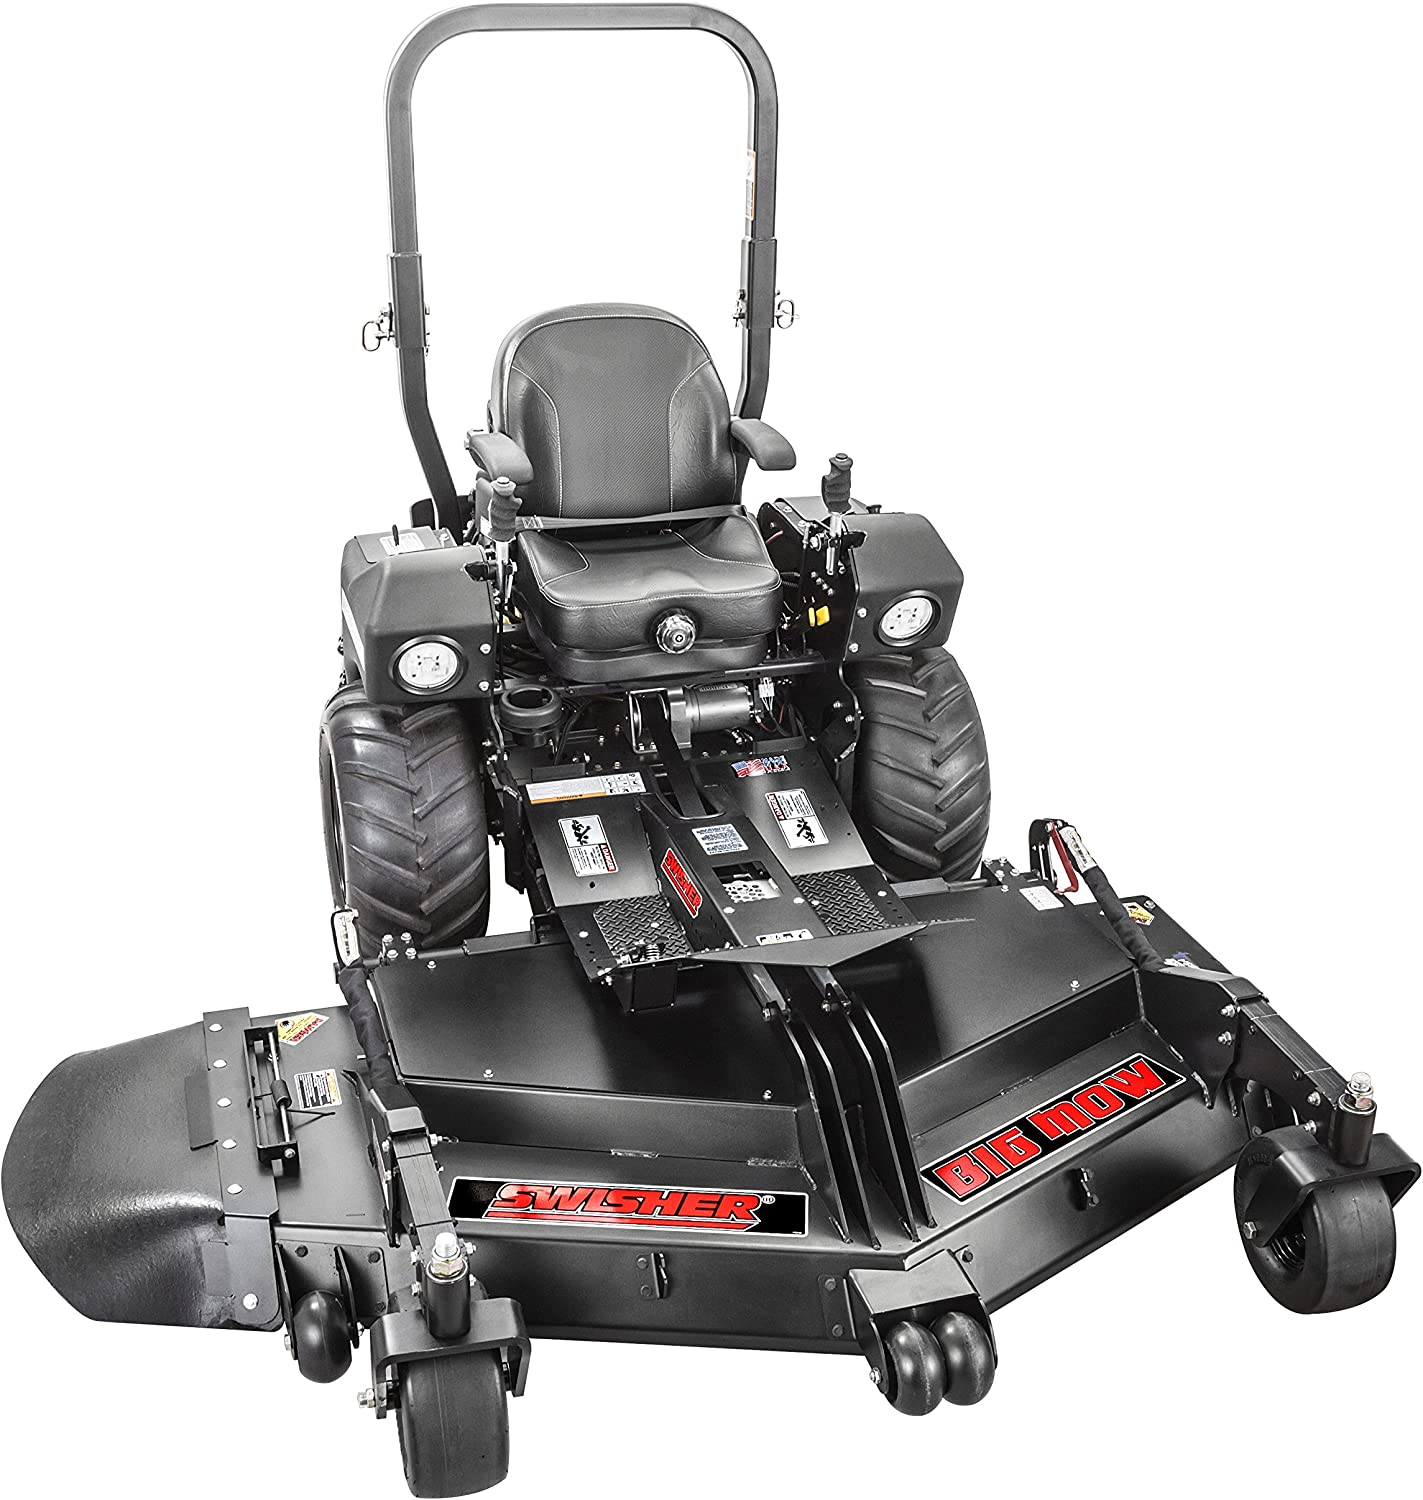 Swisher Z3166CPKA Zero Turn Best Commercial Lawn Mower